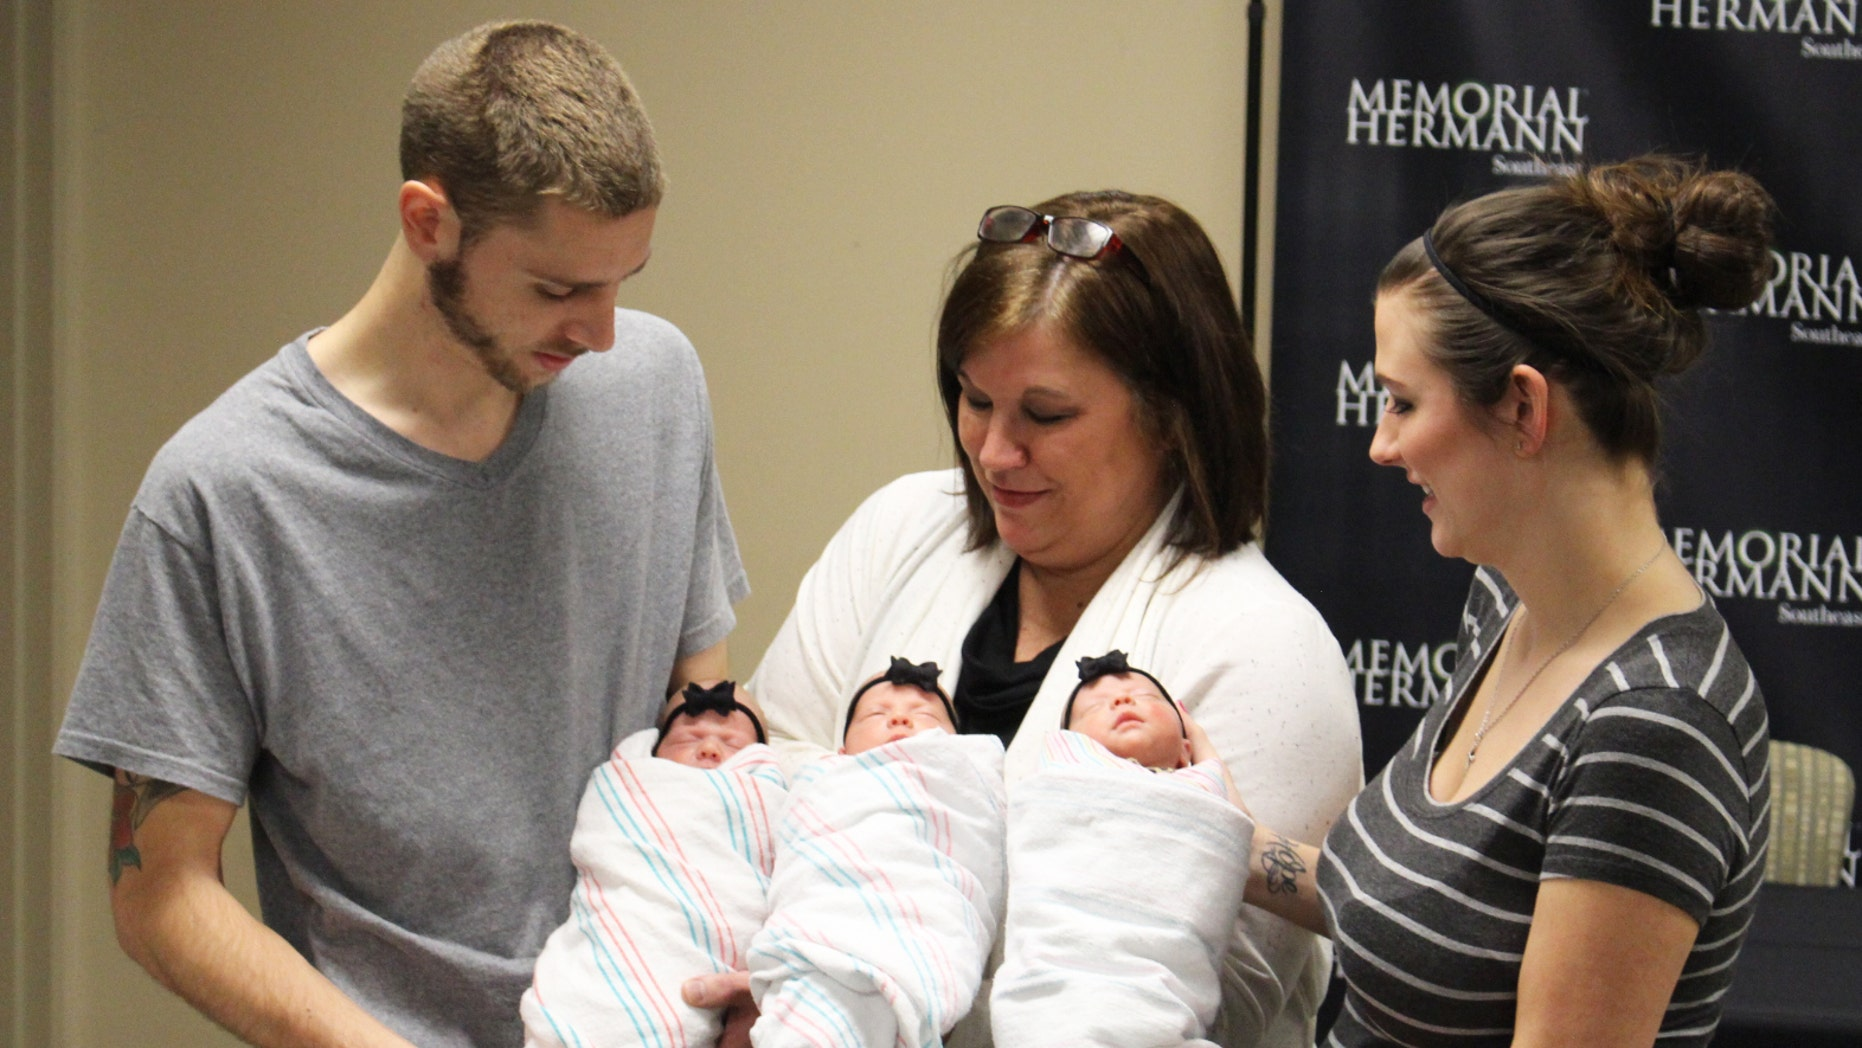 Proud Parents Brad and Stephanie Harris and grandmother Lynn Sweat holding (from left to right) identical triplets Savannah, Addison and Kinsley Harris.